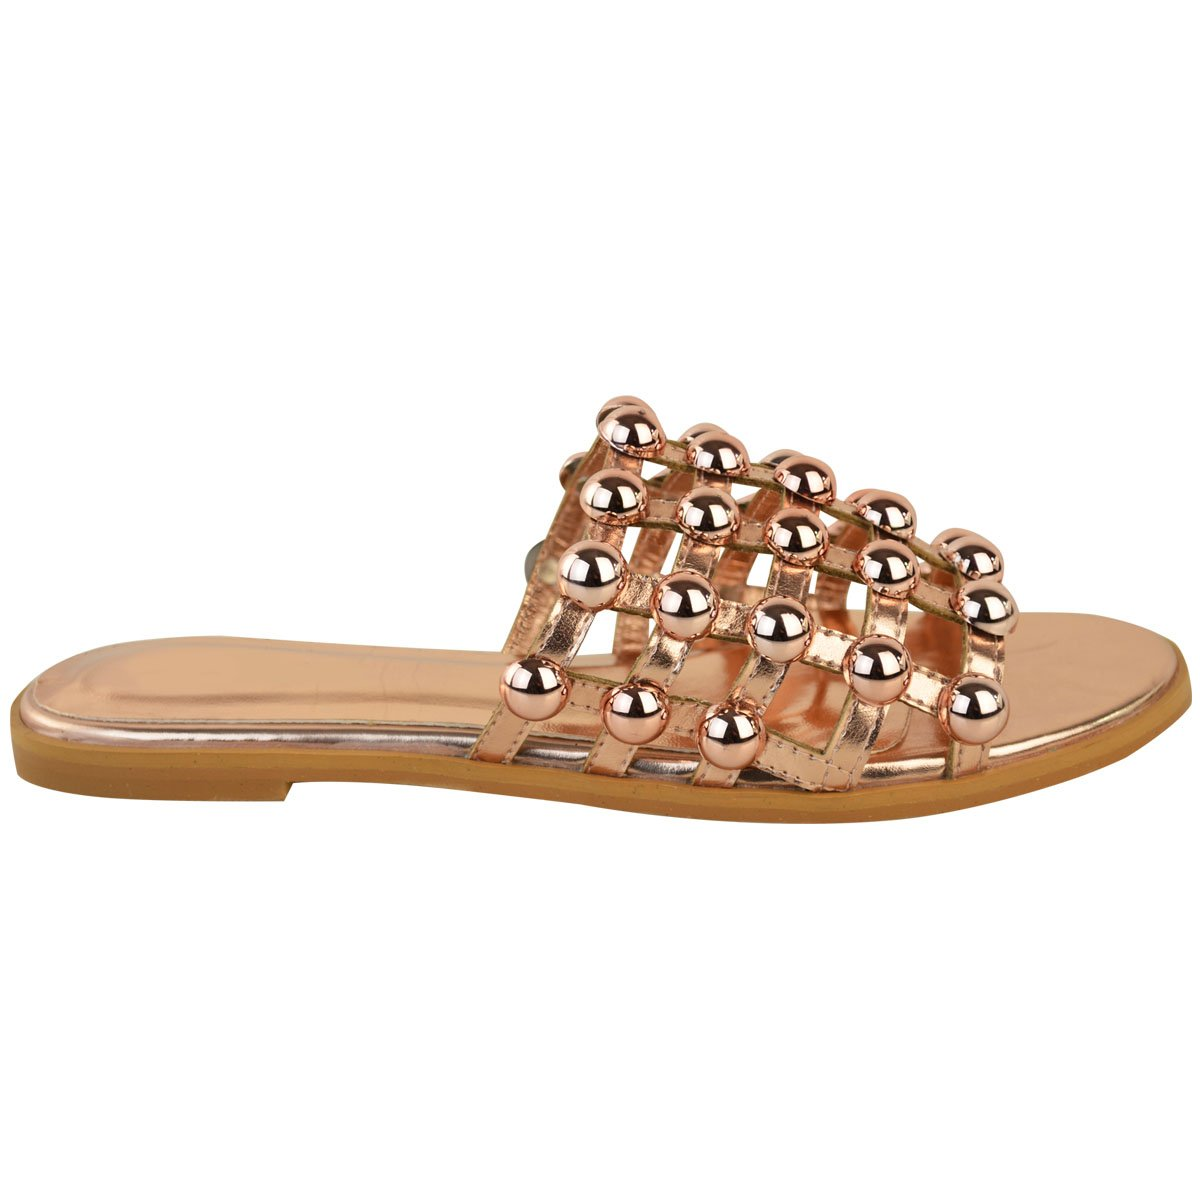 Fashion Thirsty Womens Flat Studded Summer Sandals Open Slip On Shoes Size 6